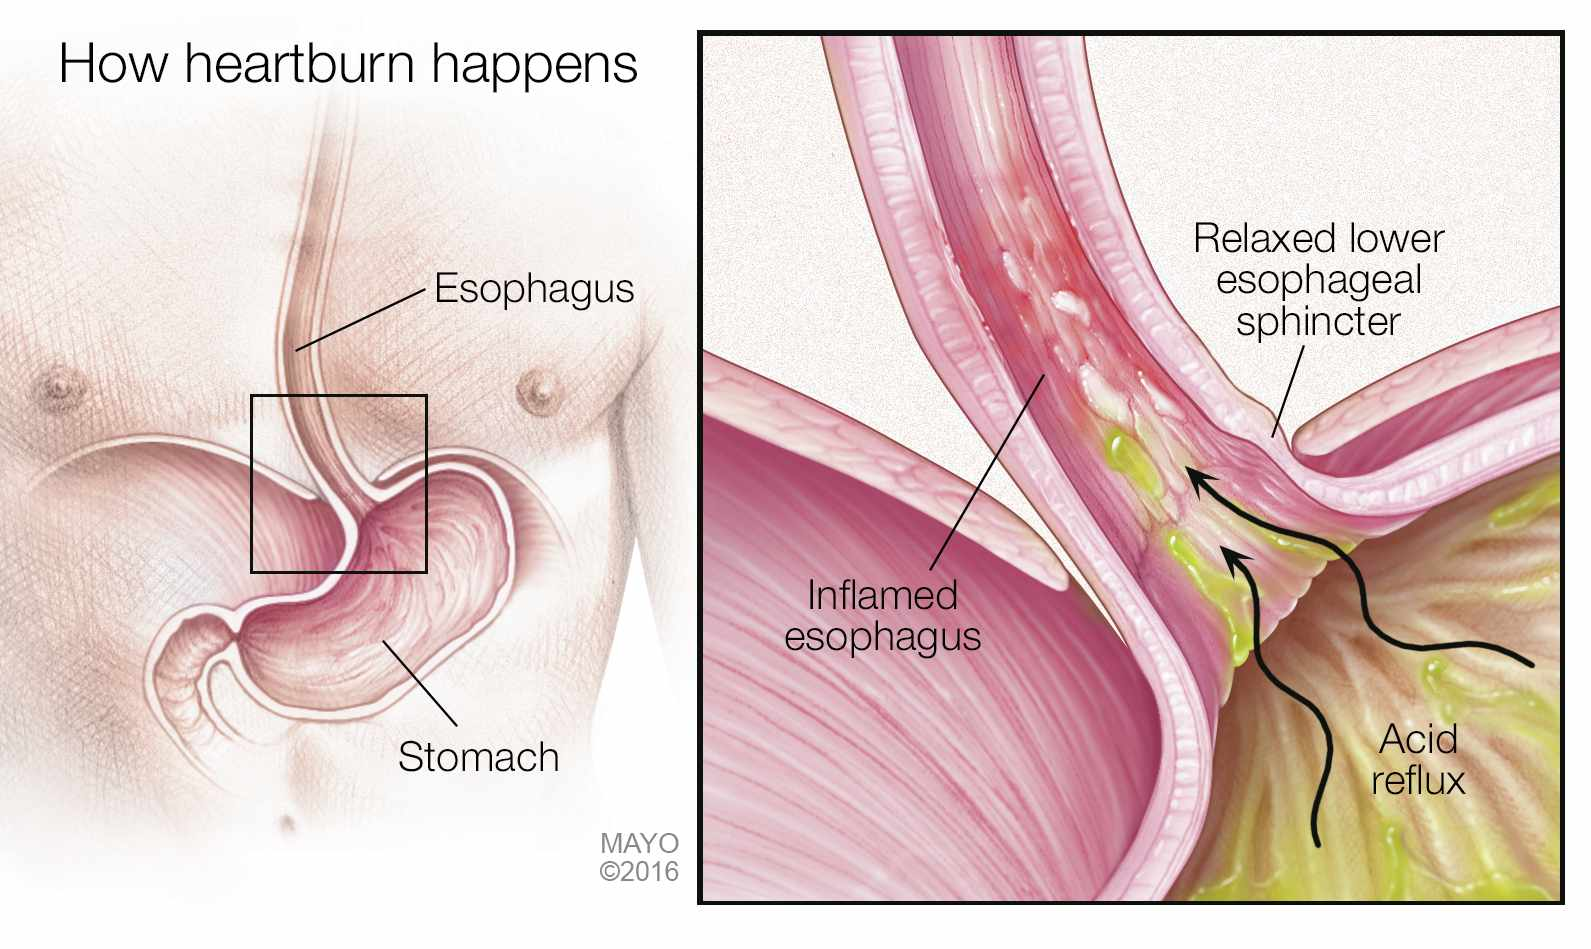 a medical illustration of how heartburn, acid reflux happens